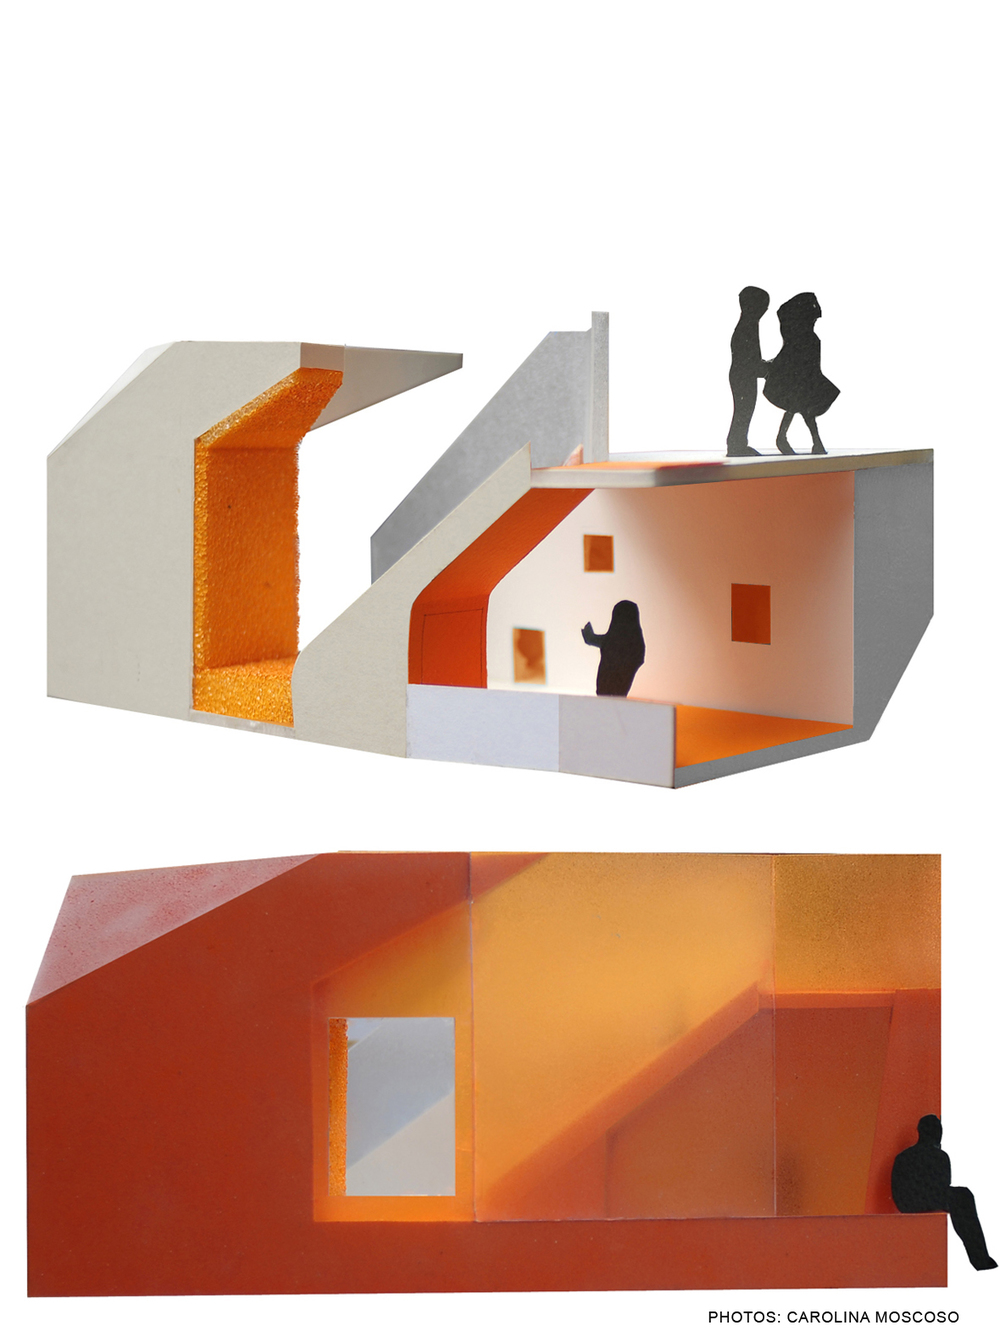 08_PLAYROOM INTERIOR+EXTERIORb.jpg